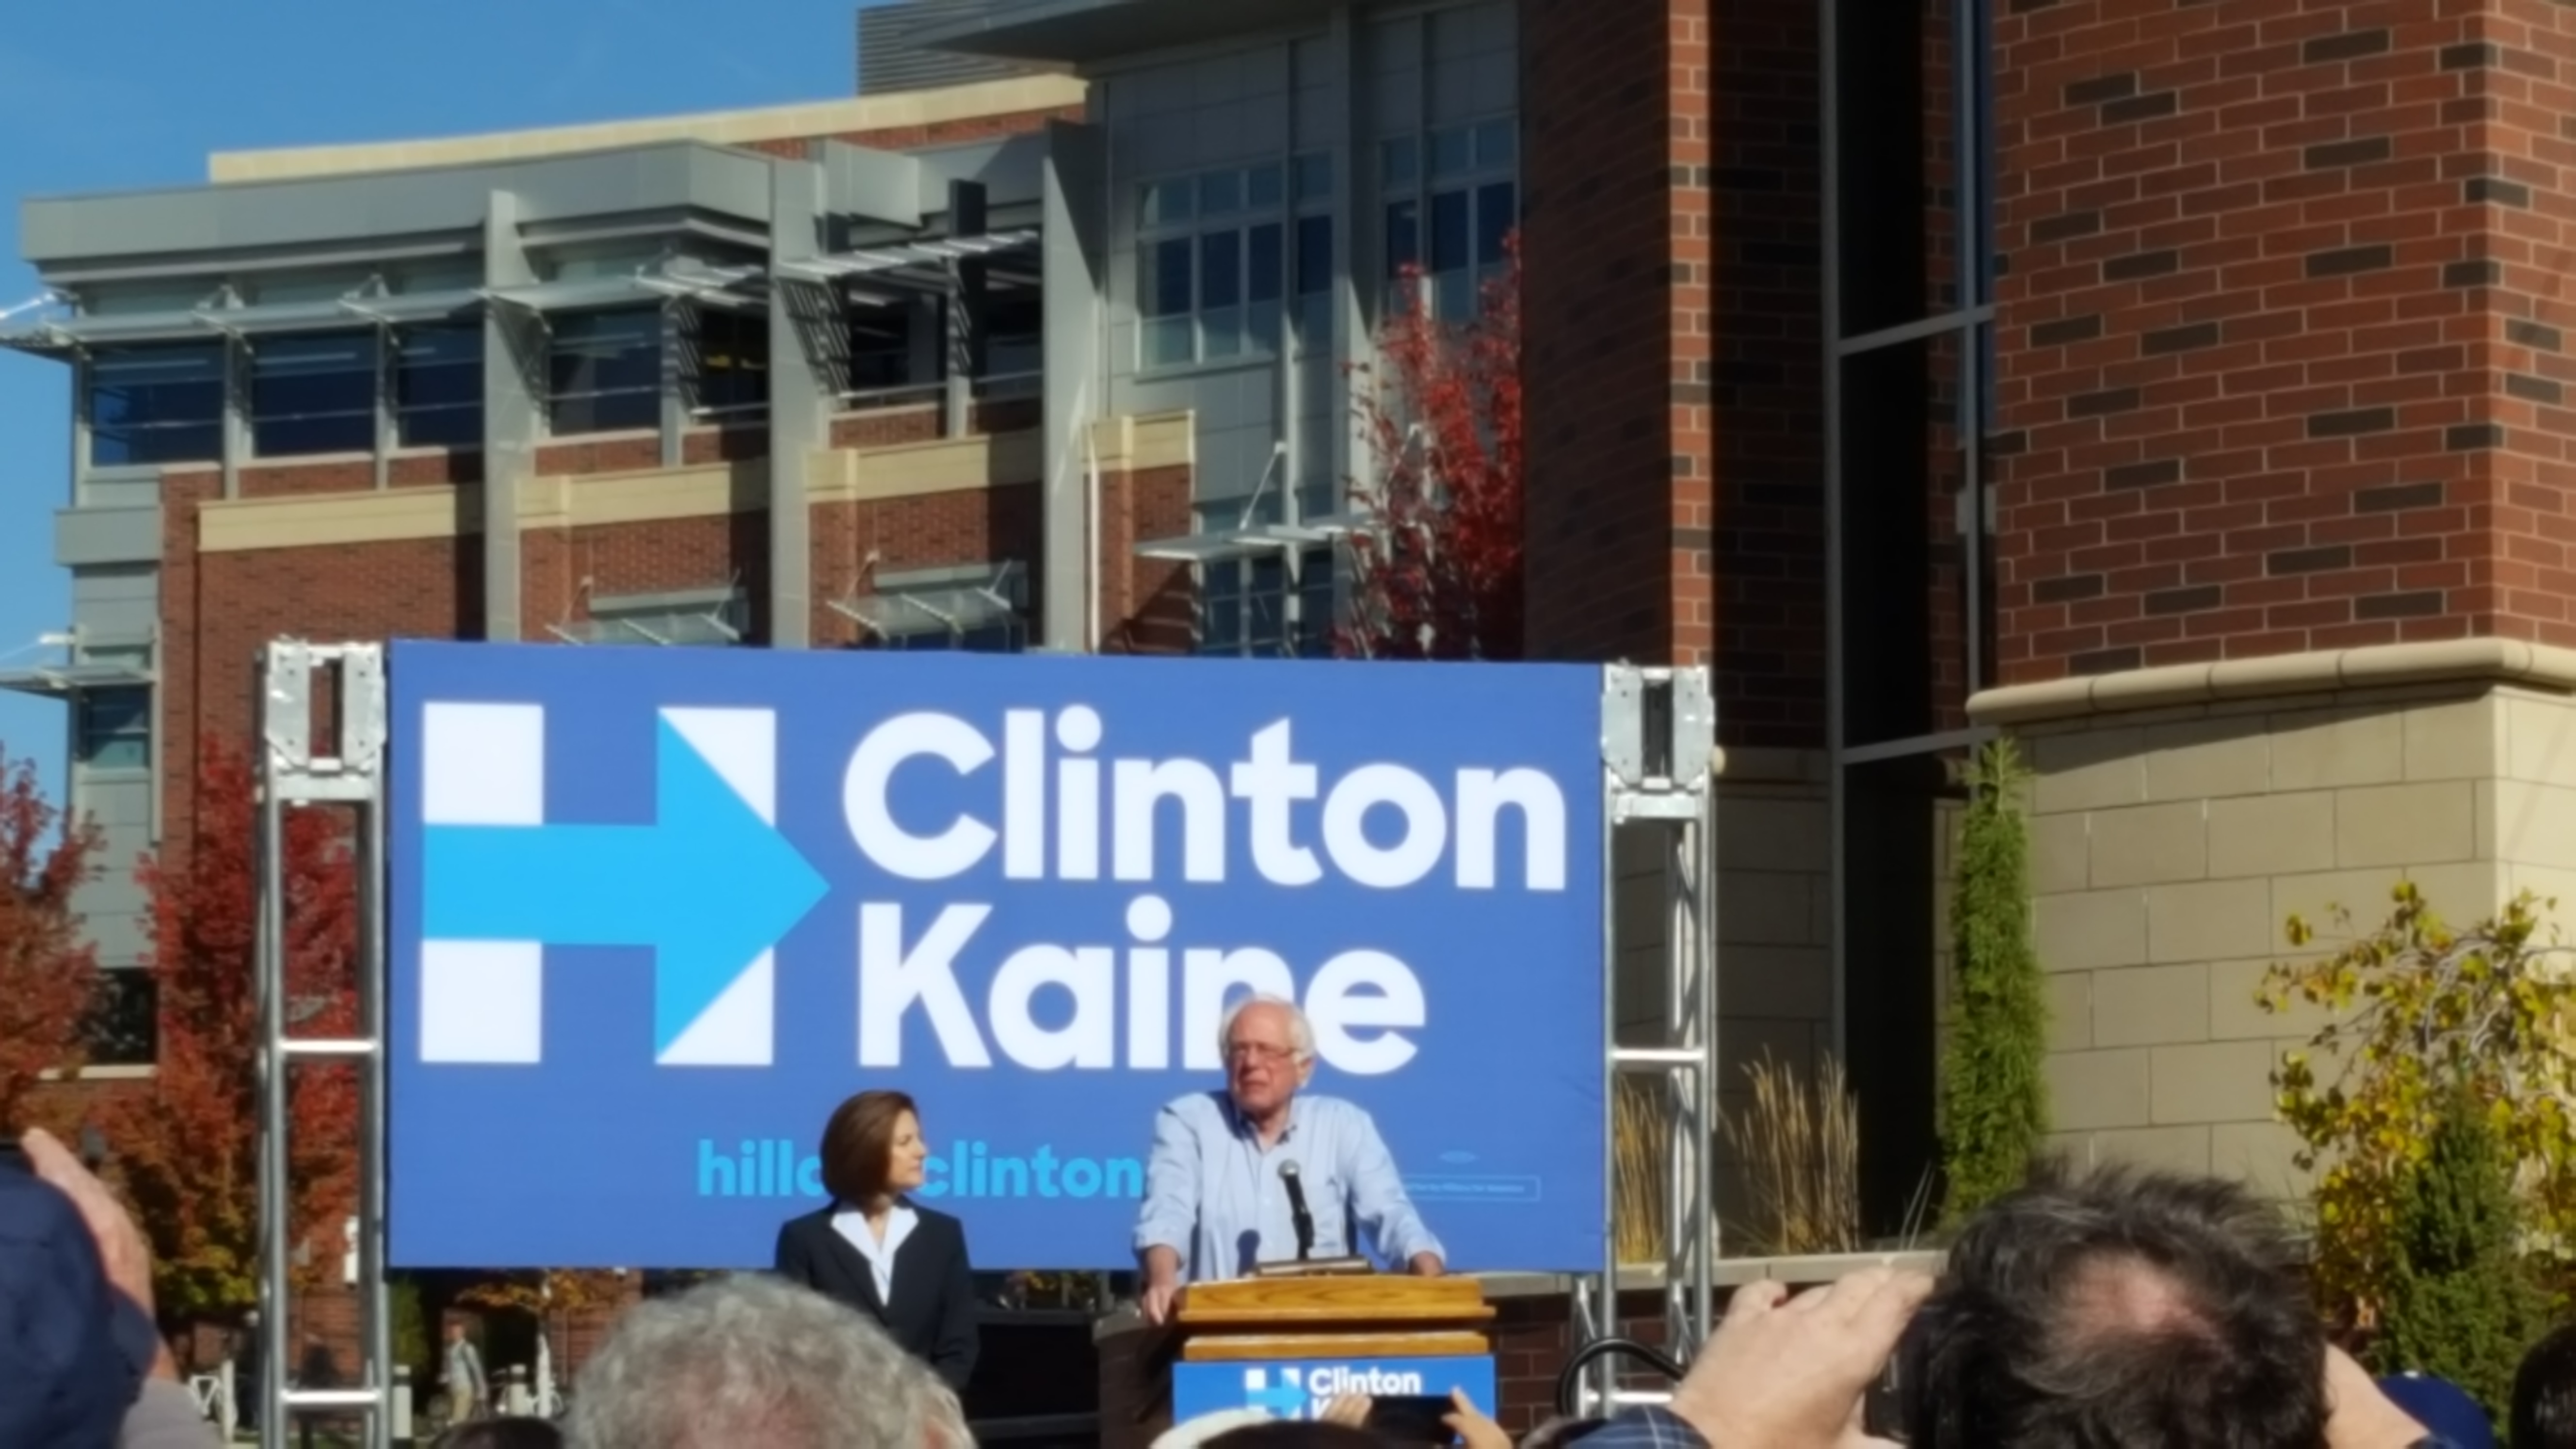 Bernie Sanders takes the stage to promote early voting.